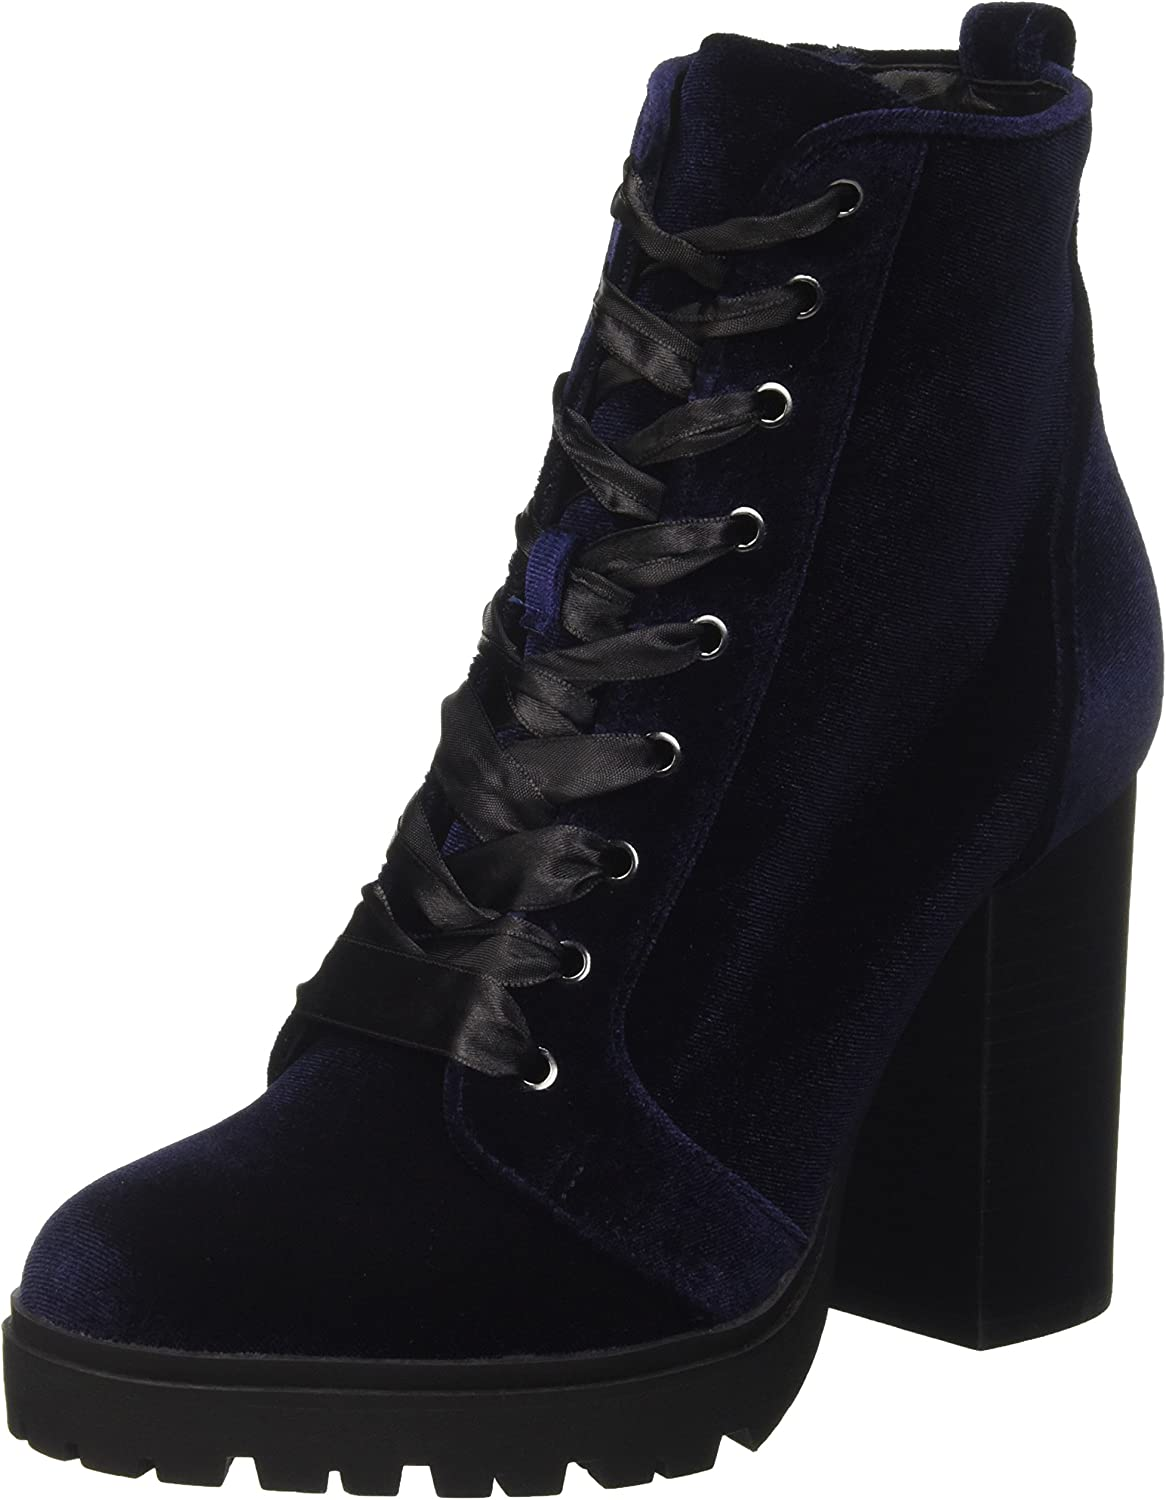 Steve Madden Women's Laurie Fashion Boots